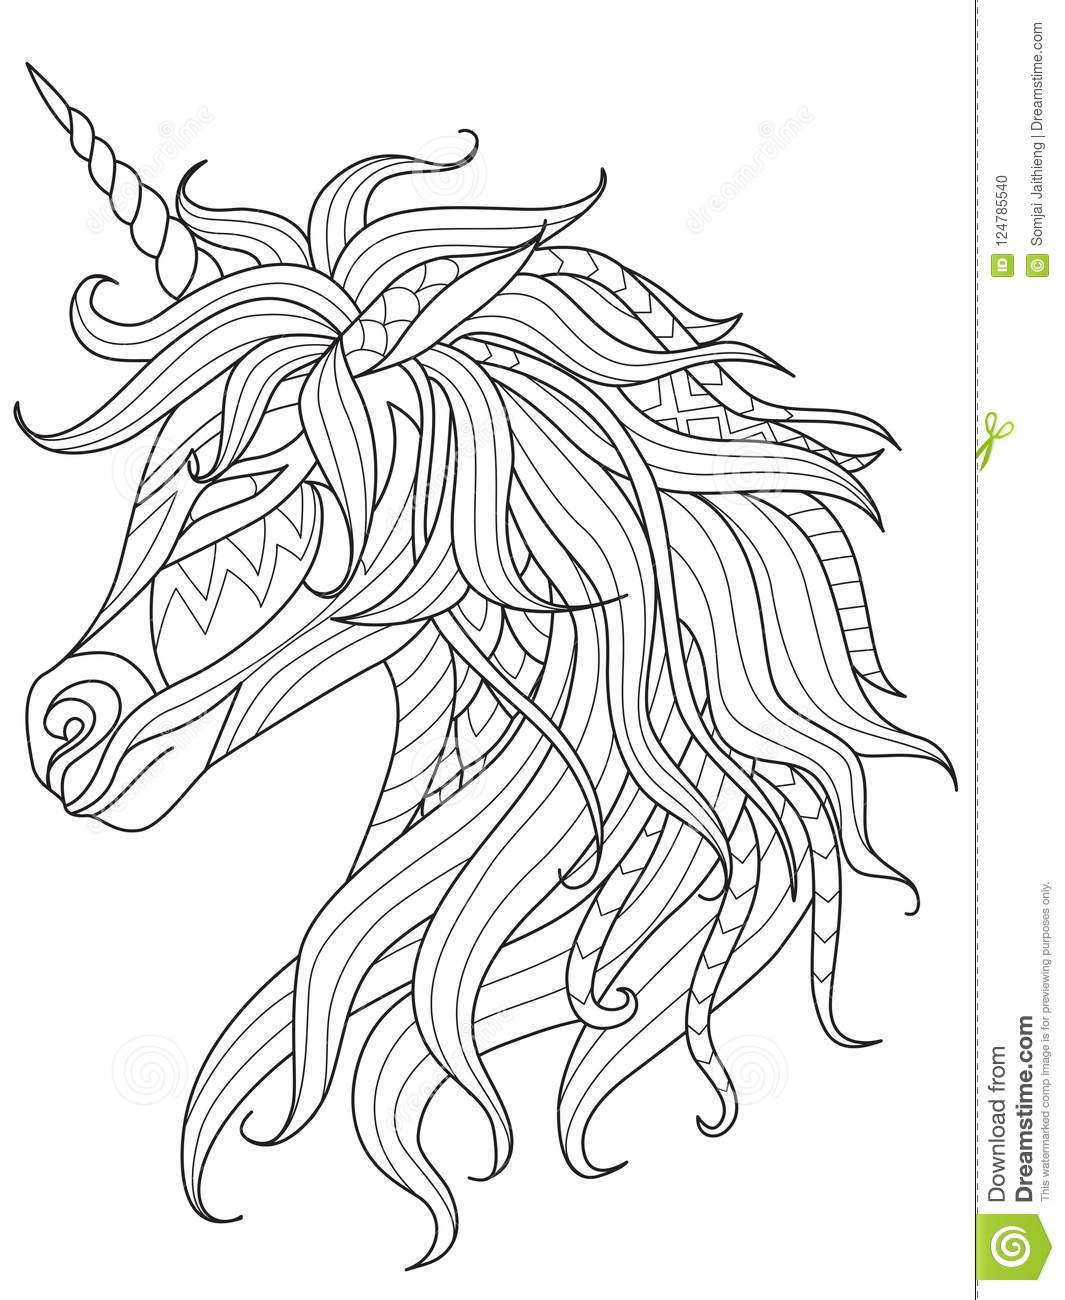 - Simple Line Art Of Unicorn For Design Element And Coloring Book On